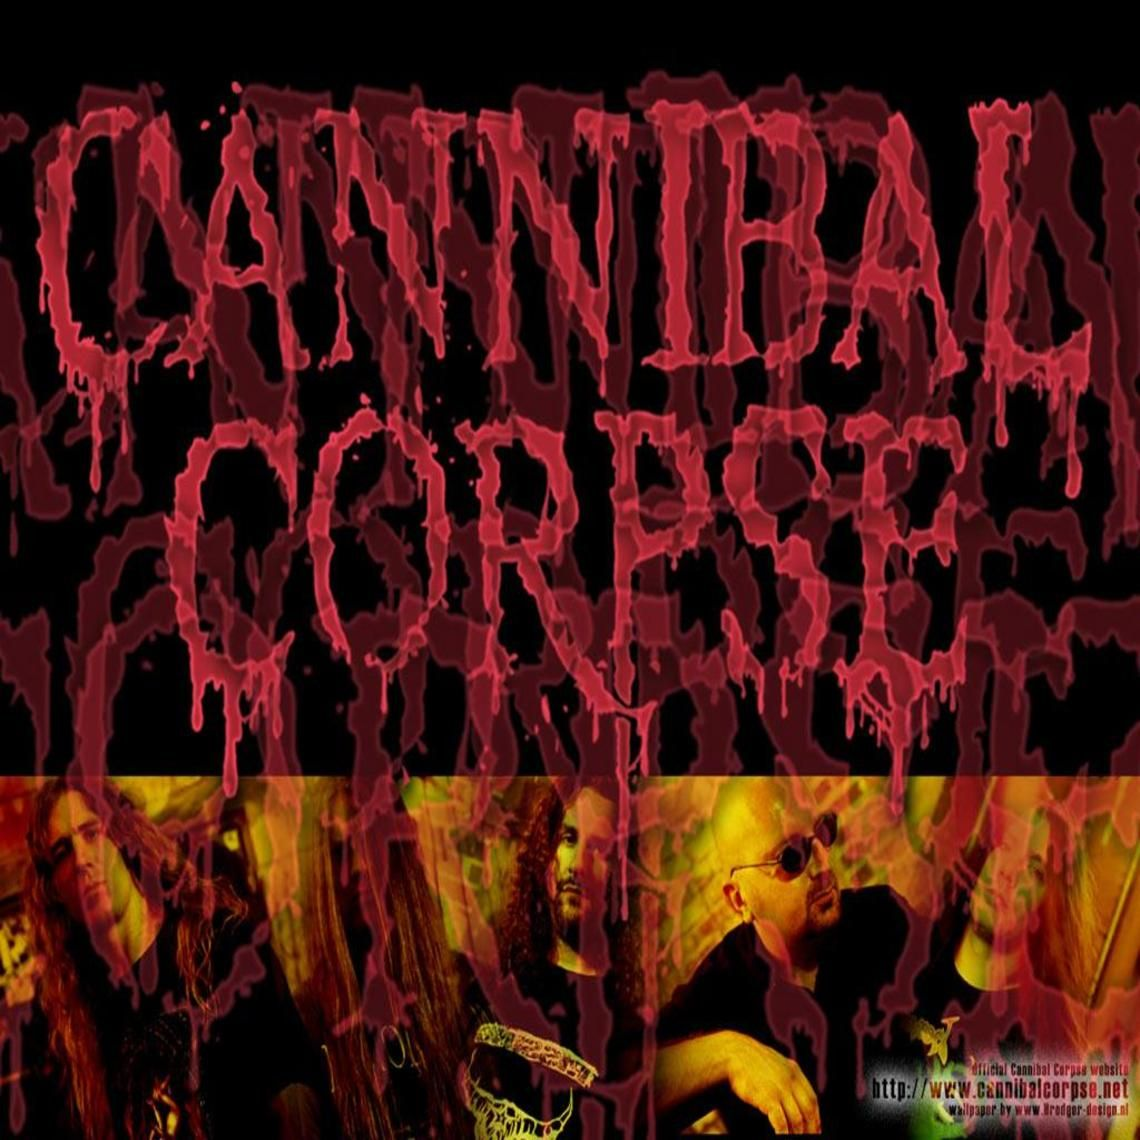 Cannibal Corpse Wallpaper Cannibal Corpse Free Wallpaper